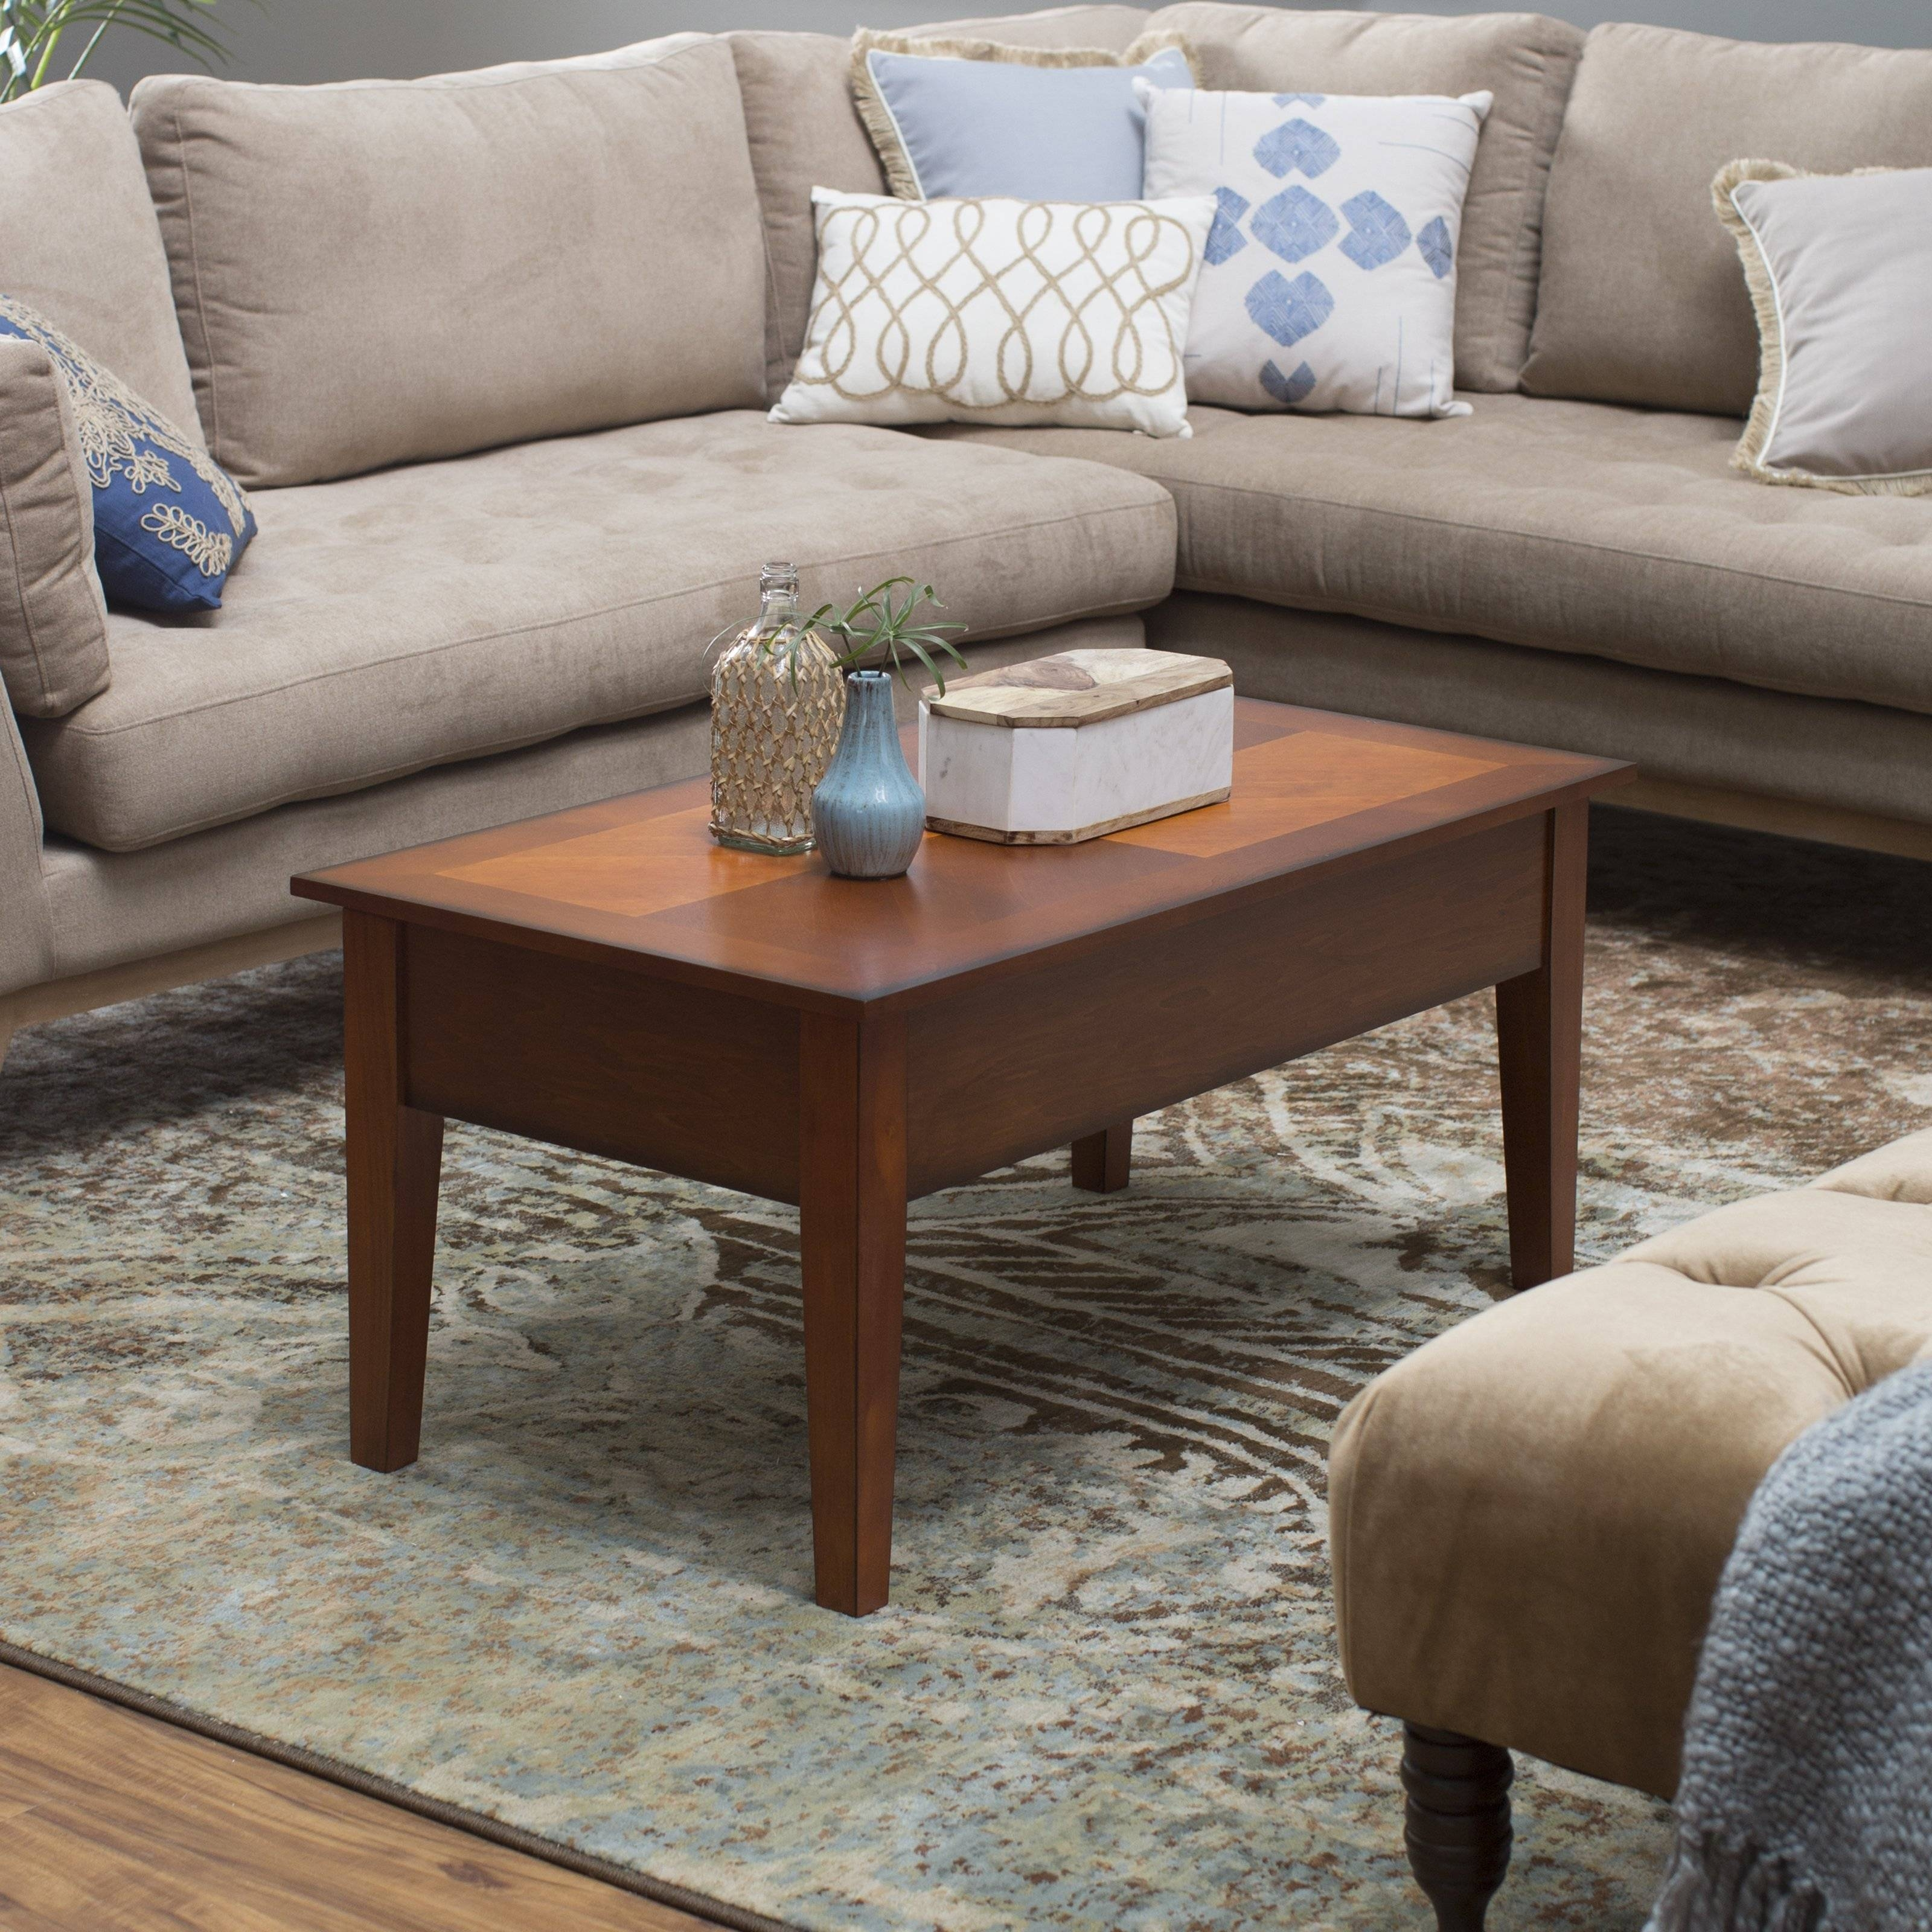 Turner Lift Top Coffee Table - Espresso | Hayneedle for Rising Coffee Tables (Image 26 of 30)